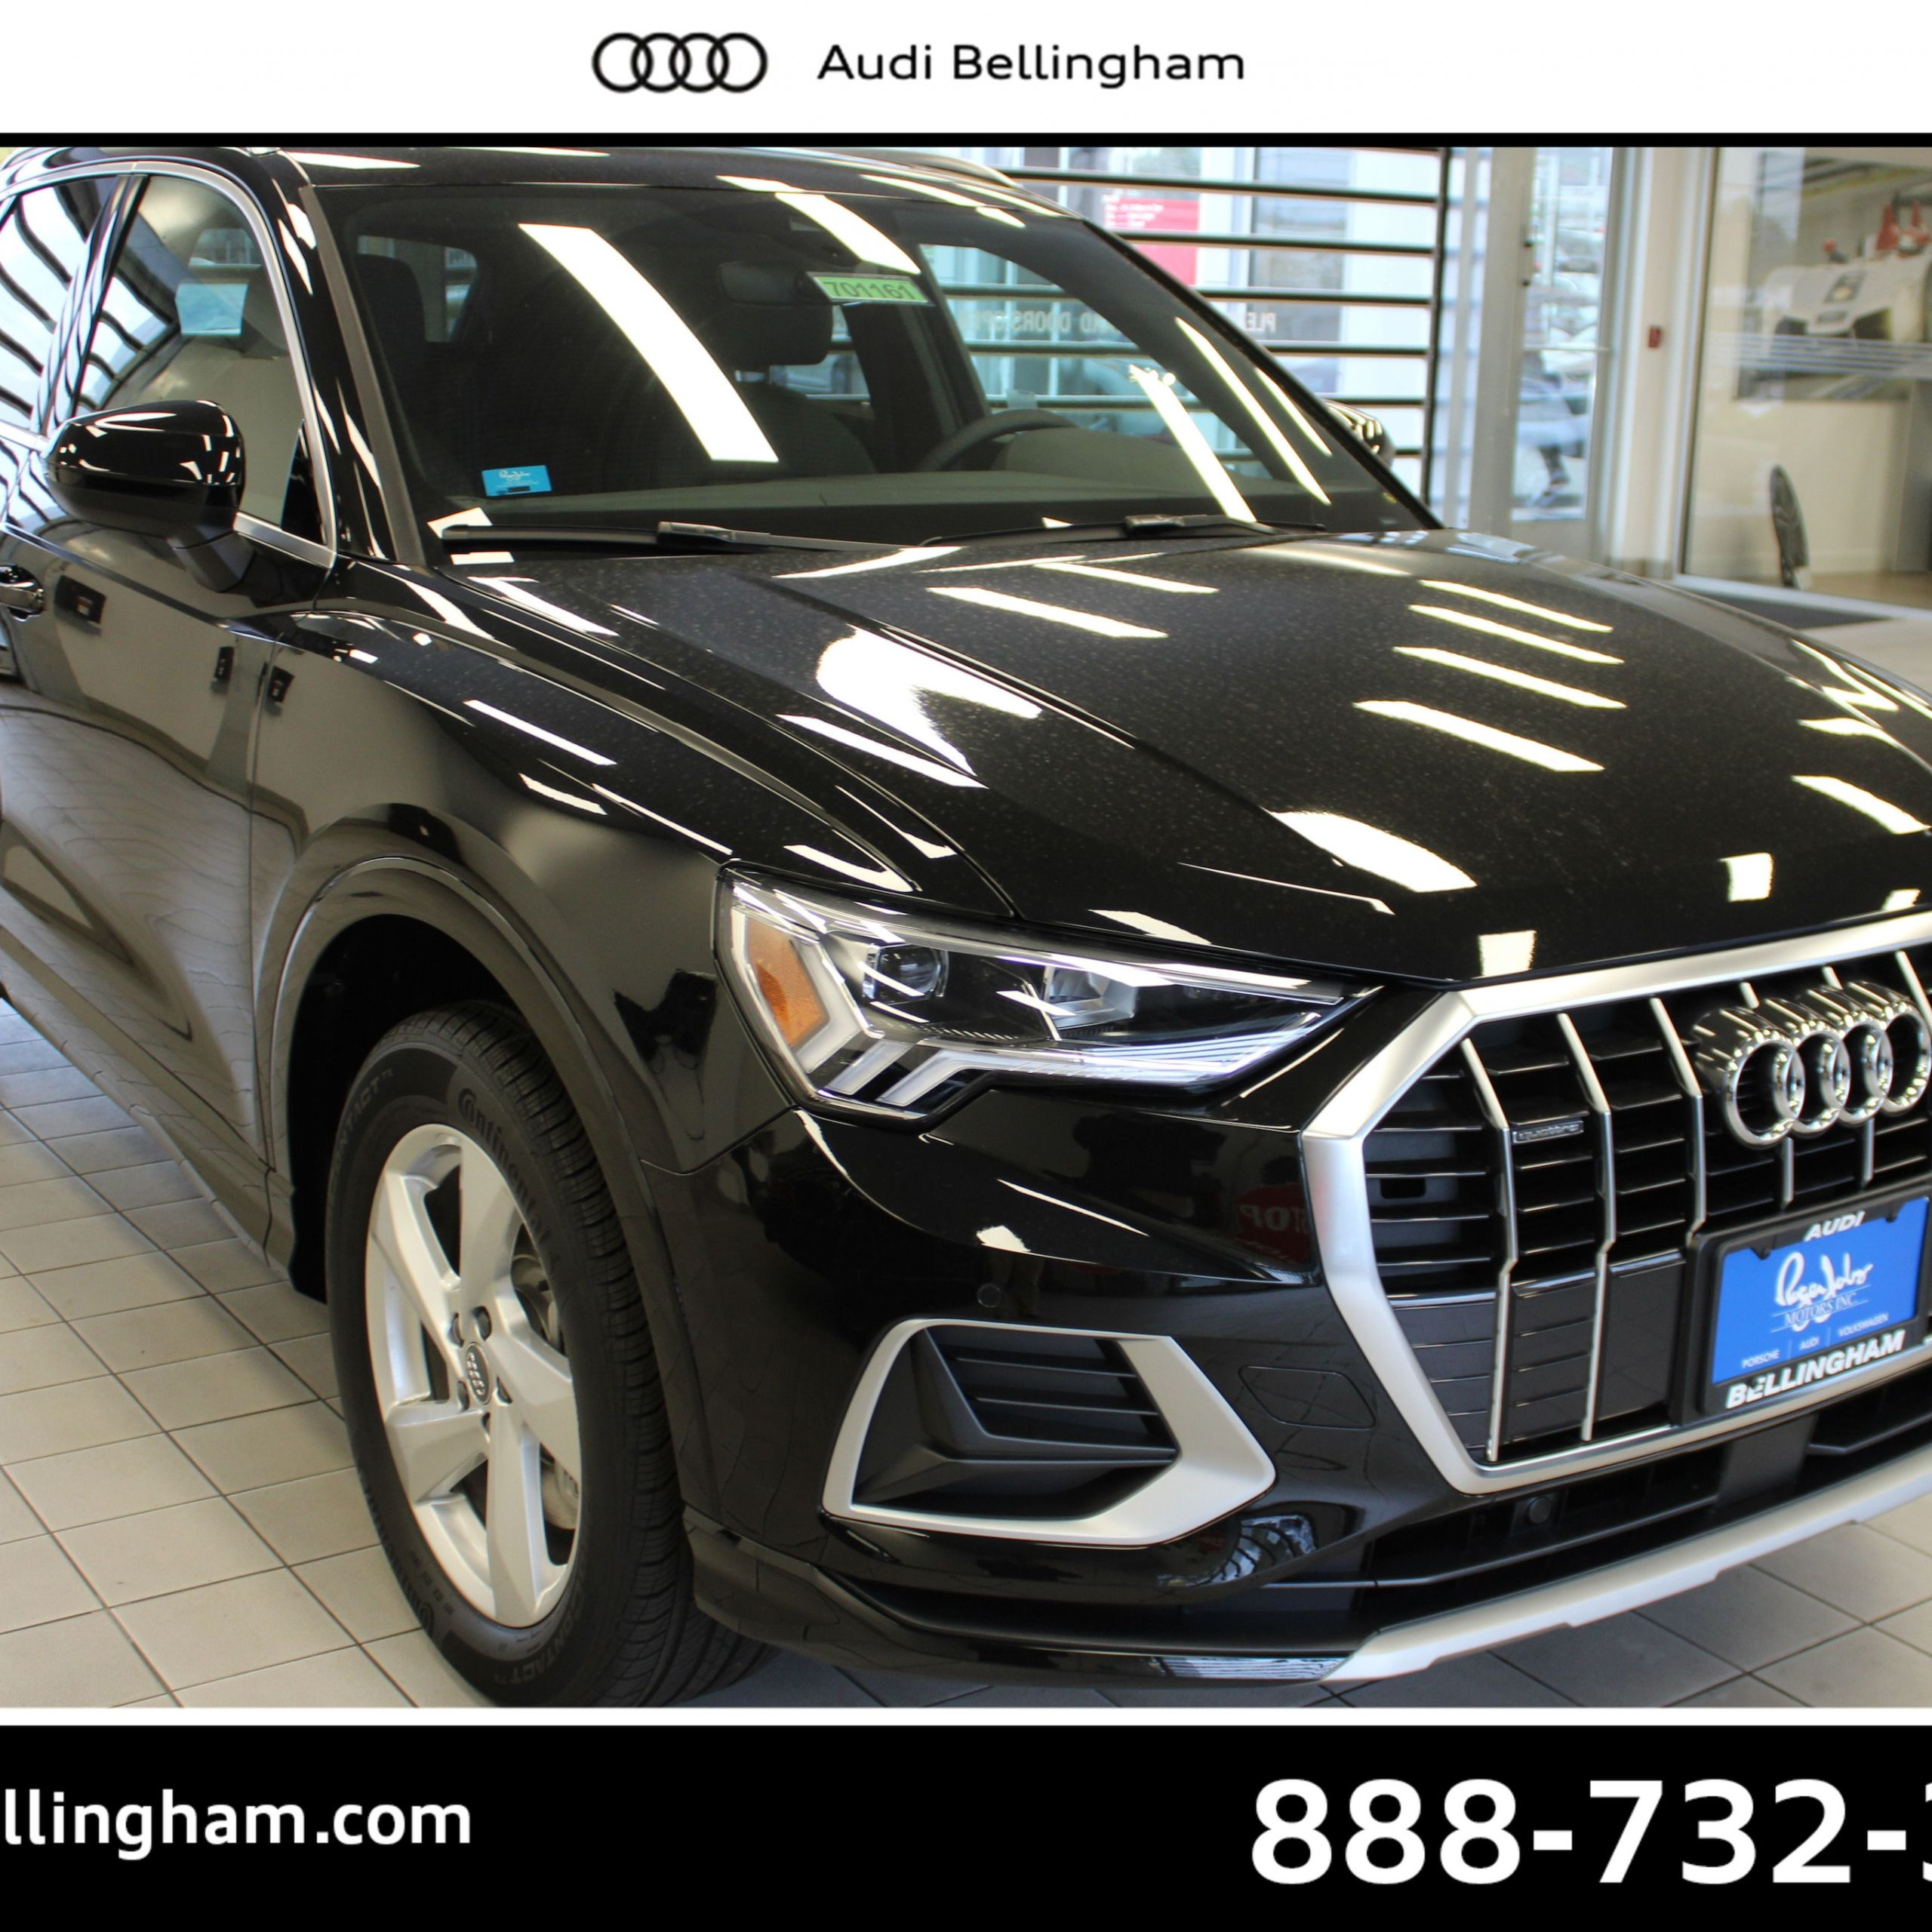 Audi Q3 for Sale Beautiful 2020 Audi Q3 for Sale In Bellingham Wa